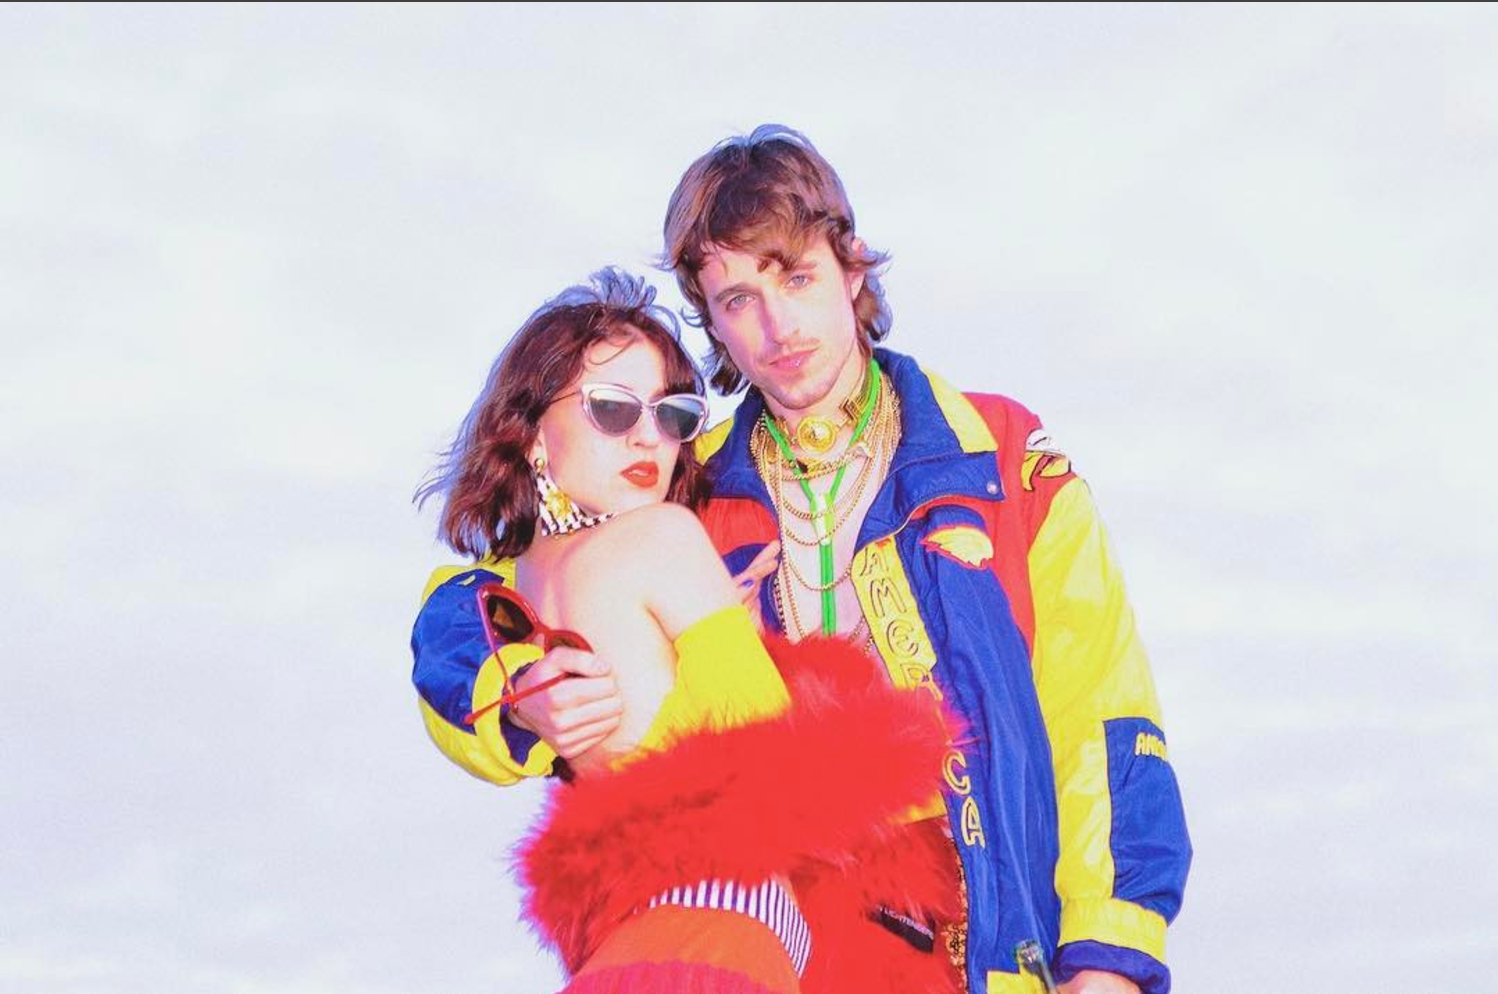 HOLYCHILD - HOLYCHILD aren't exactly surprised that in the last few years their brand of brainy effervescent tunes have caught on. Pleased? yes. Honored? Of course. But given the way the social trends have been bending, neither member find it shocking that music fans are craving substance.It's Brat Pop, the glittery blend of electronic beats and tell-it-like it is lyrics that Liz Nistico and co-writer/producer Louie Diller perfected with their debut album The Shape of Brat Pop to Come.Read our profile of HOLYCHILD here.